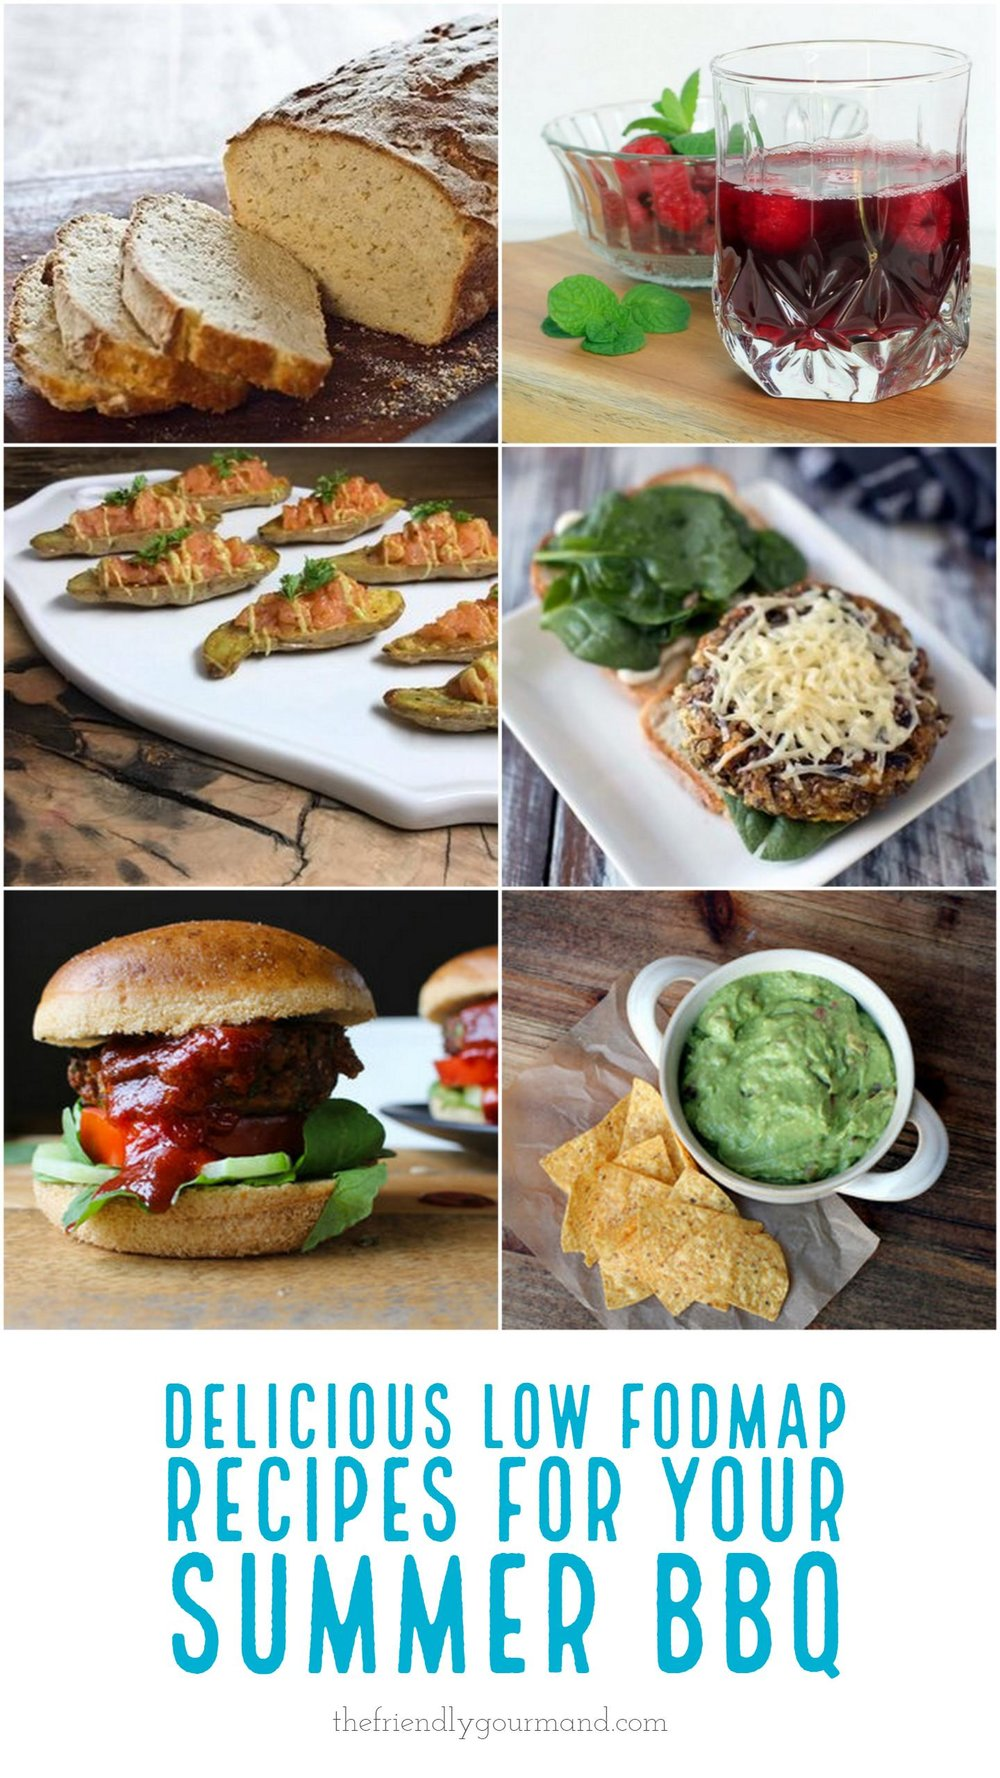 Delicious Low FODMAP Recipes for your Summer BBQ   The Friendly Gourmand   #lowfodmap #fodmapfriendly #glutenfree #summer #bbq #barbeque